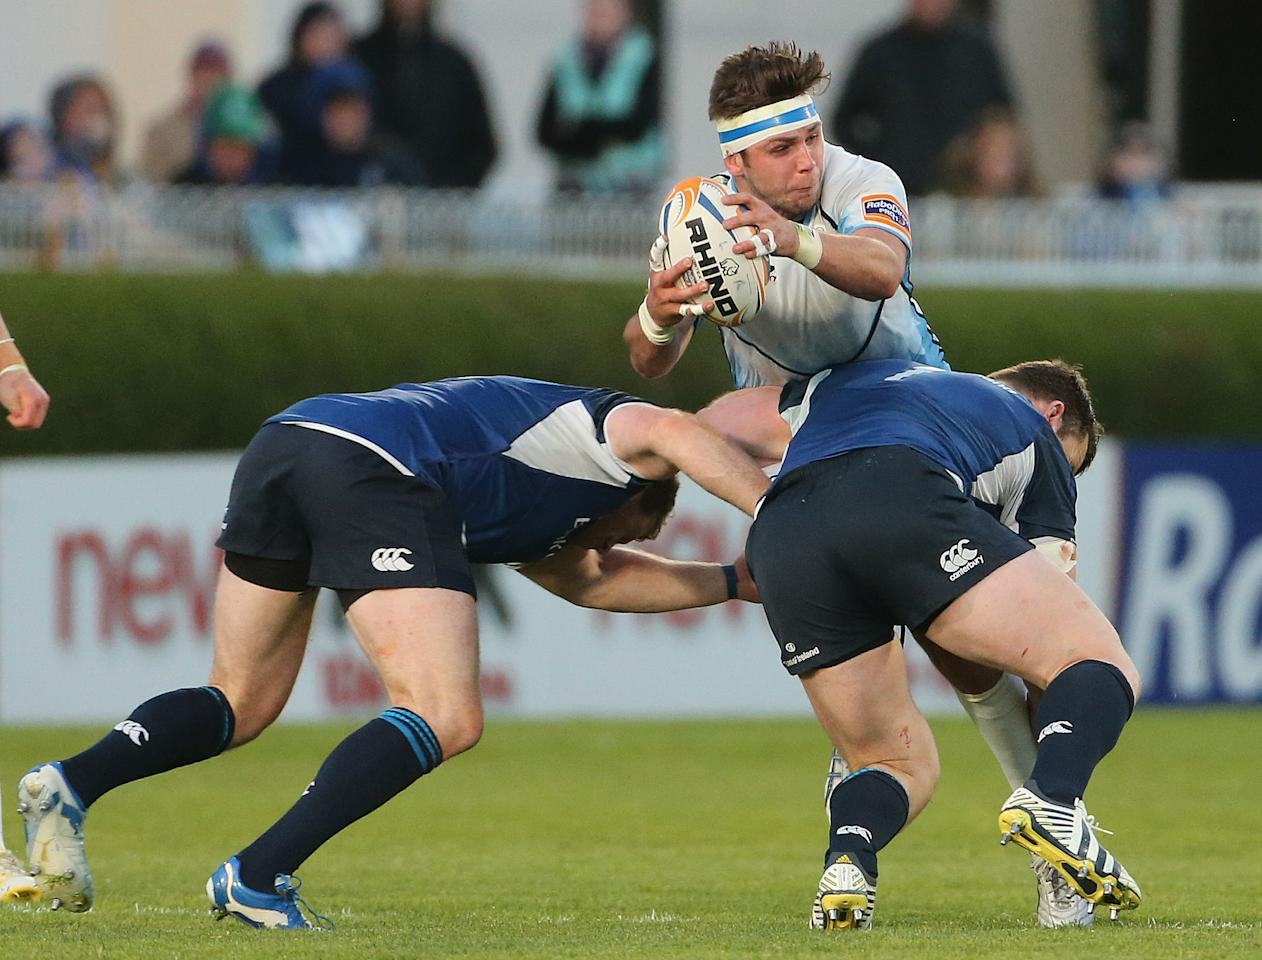 Leinster's Sean Cronin and Cian Healy tackle Glasgow Warriors' Ryan Wilson during the Rabo Direct PRO12 Playoff match at the RDS, Dublin.